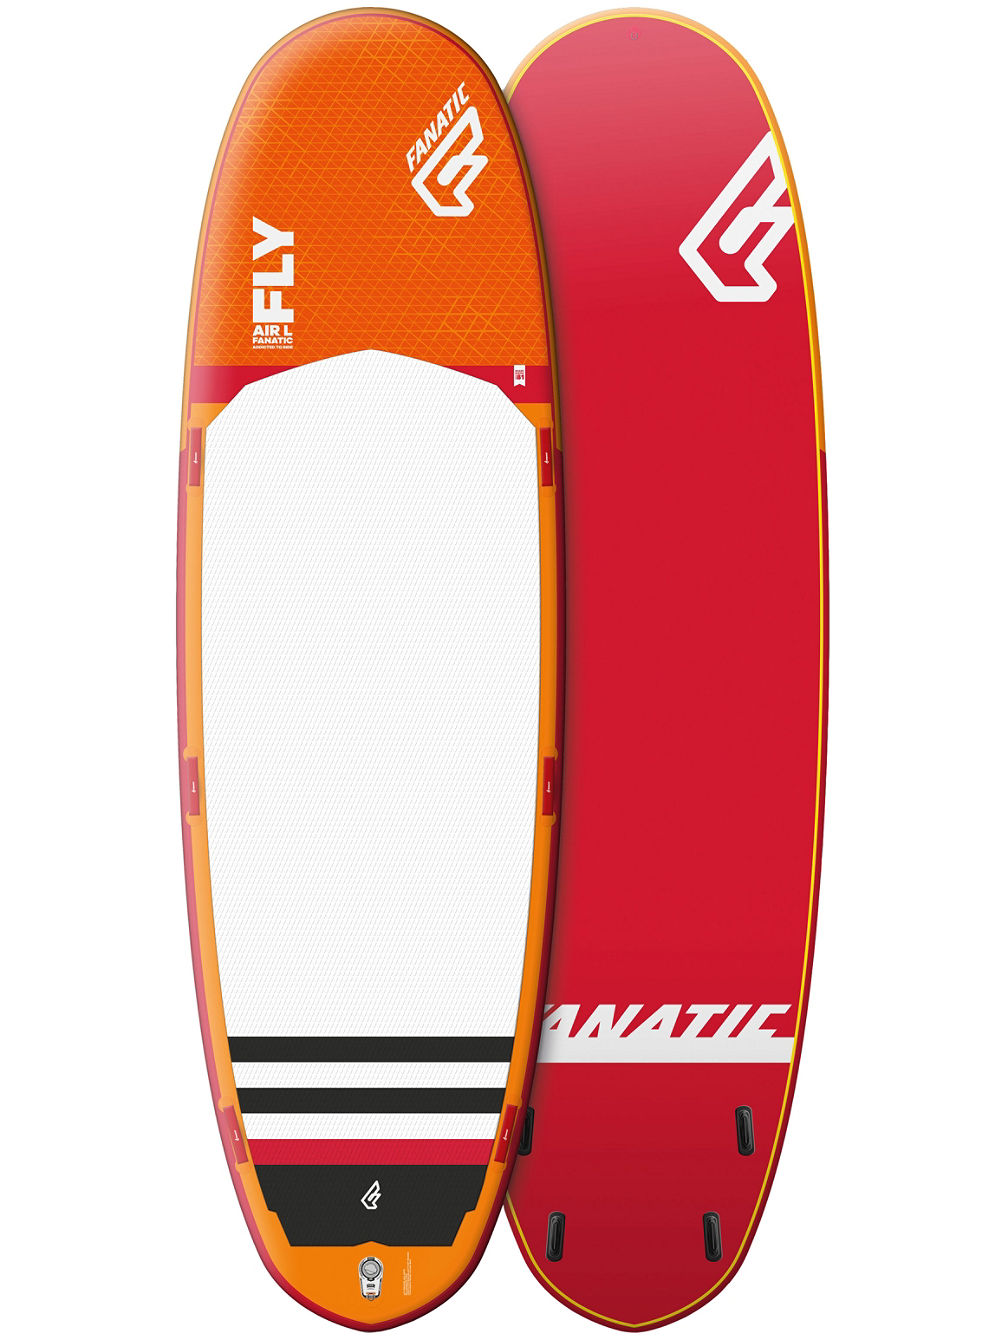 Fly Air L 17.0 SUP Board